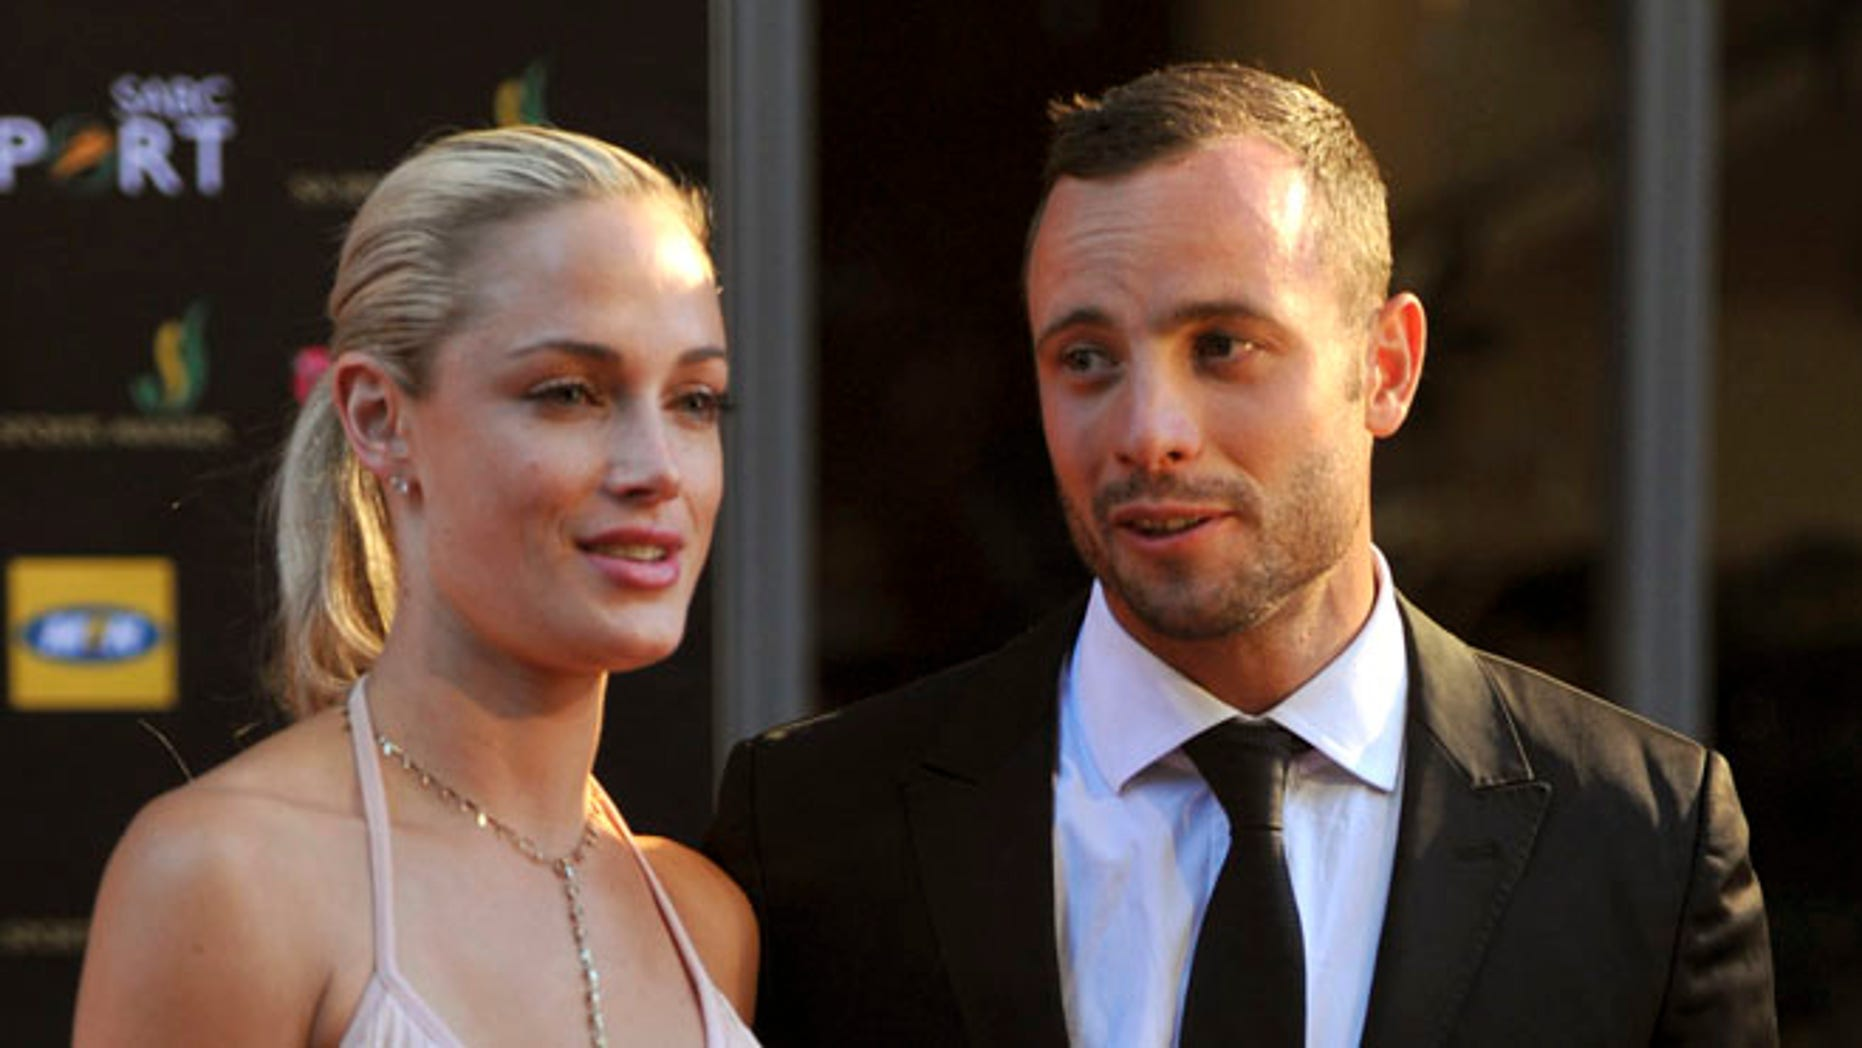 Nov. 4, 2012: In this photo, South African Olympic athlete Oscar Pistorius and Reeva Steenkamp, believed to be his girlfriend, at an awards ceremony, in Johannesburg, South Africa.